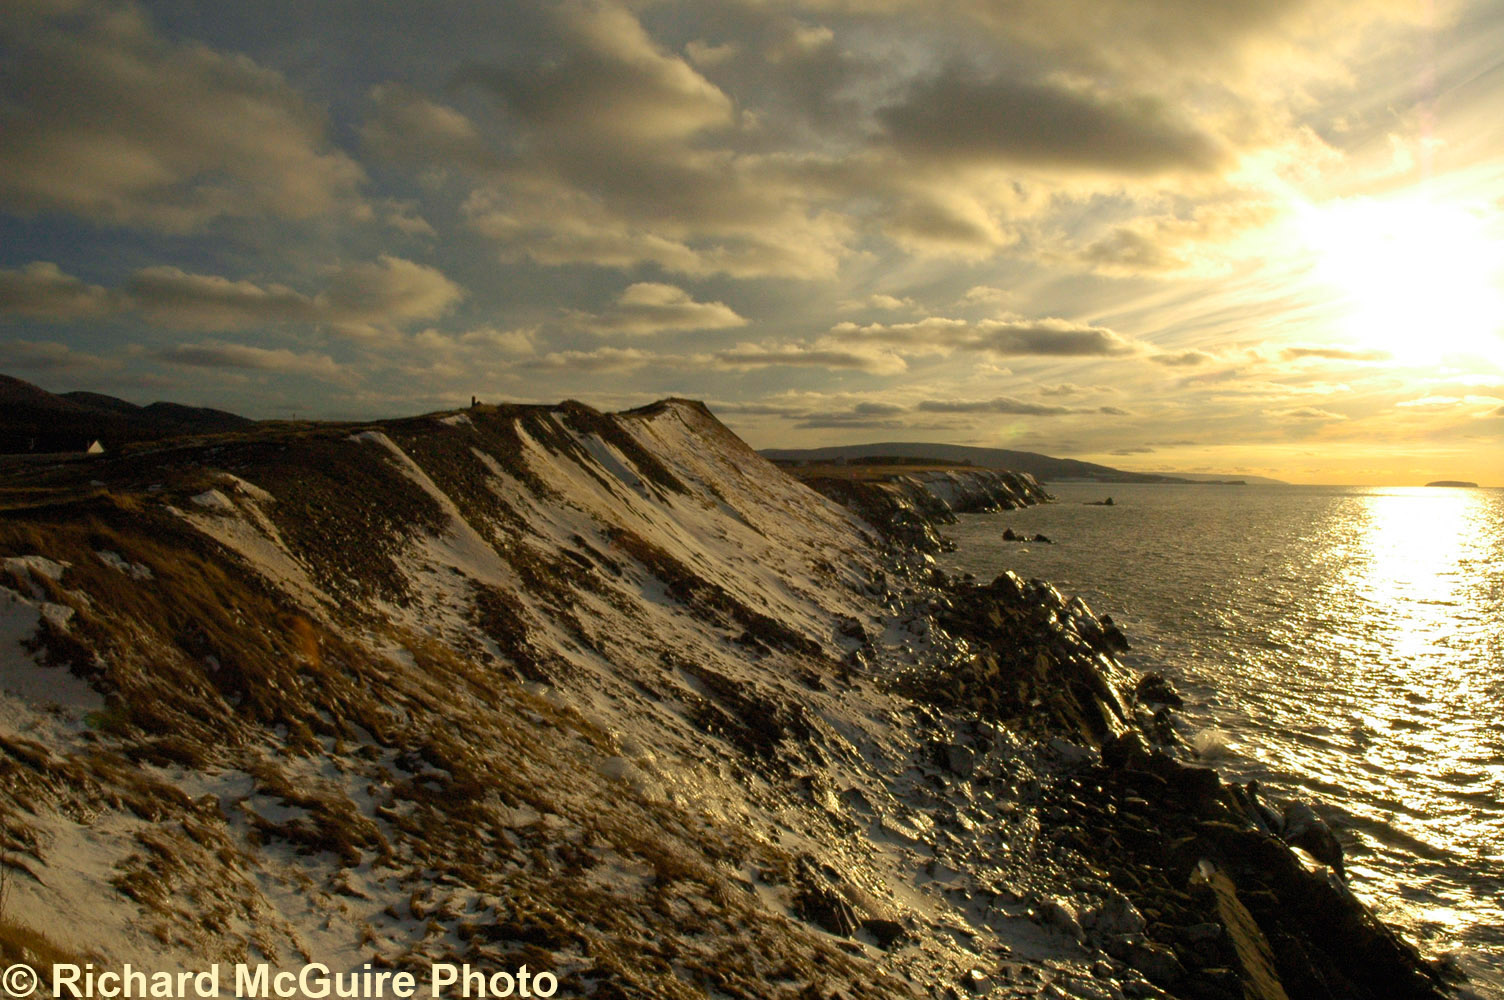 Late Afternoon Sun, Cabot Trail, Cape Breton